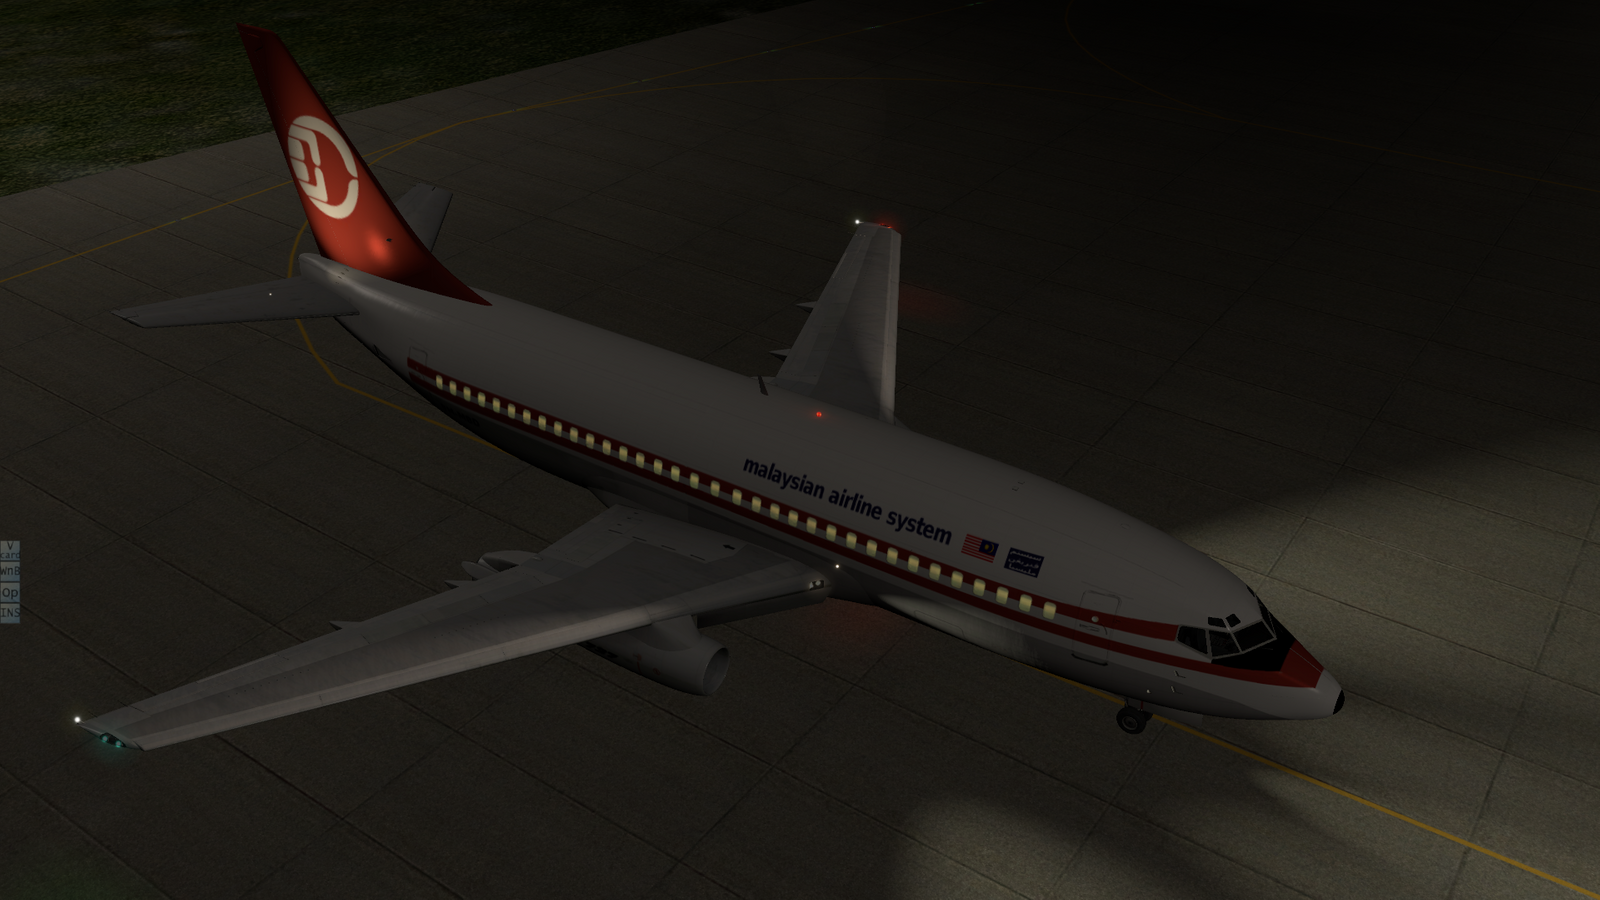 Painting the FlyJSim 732 Twinjet (Boeing 737-200) | Life, The